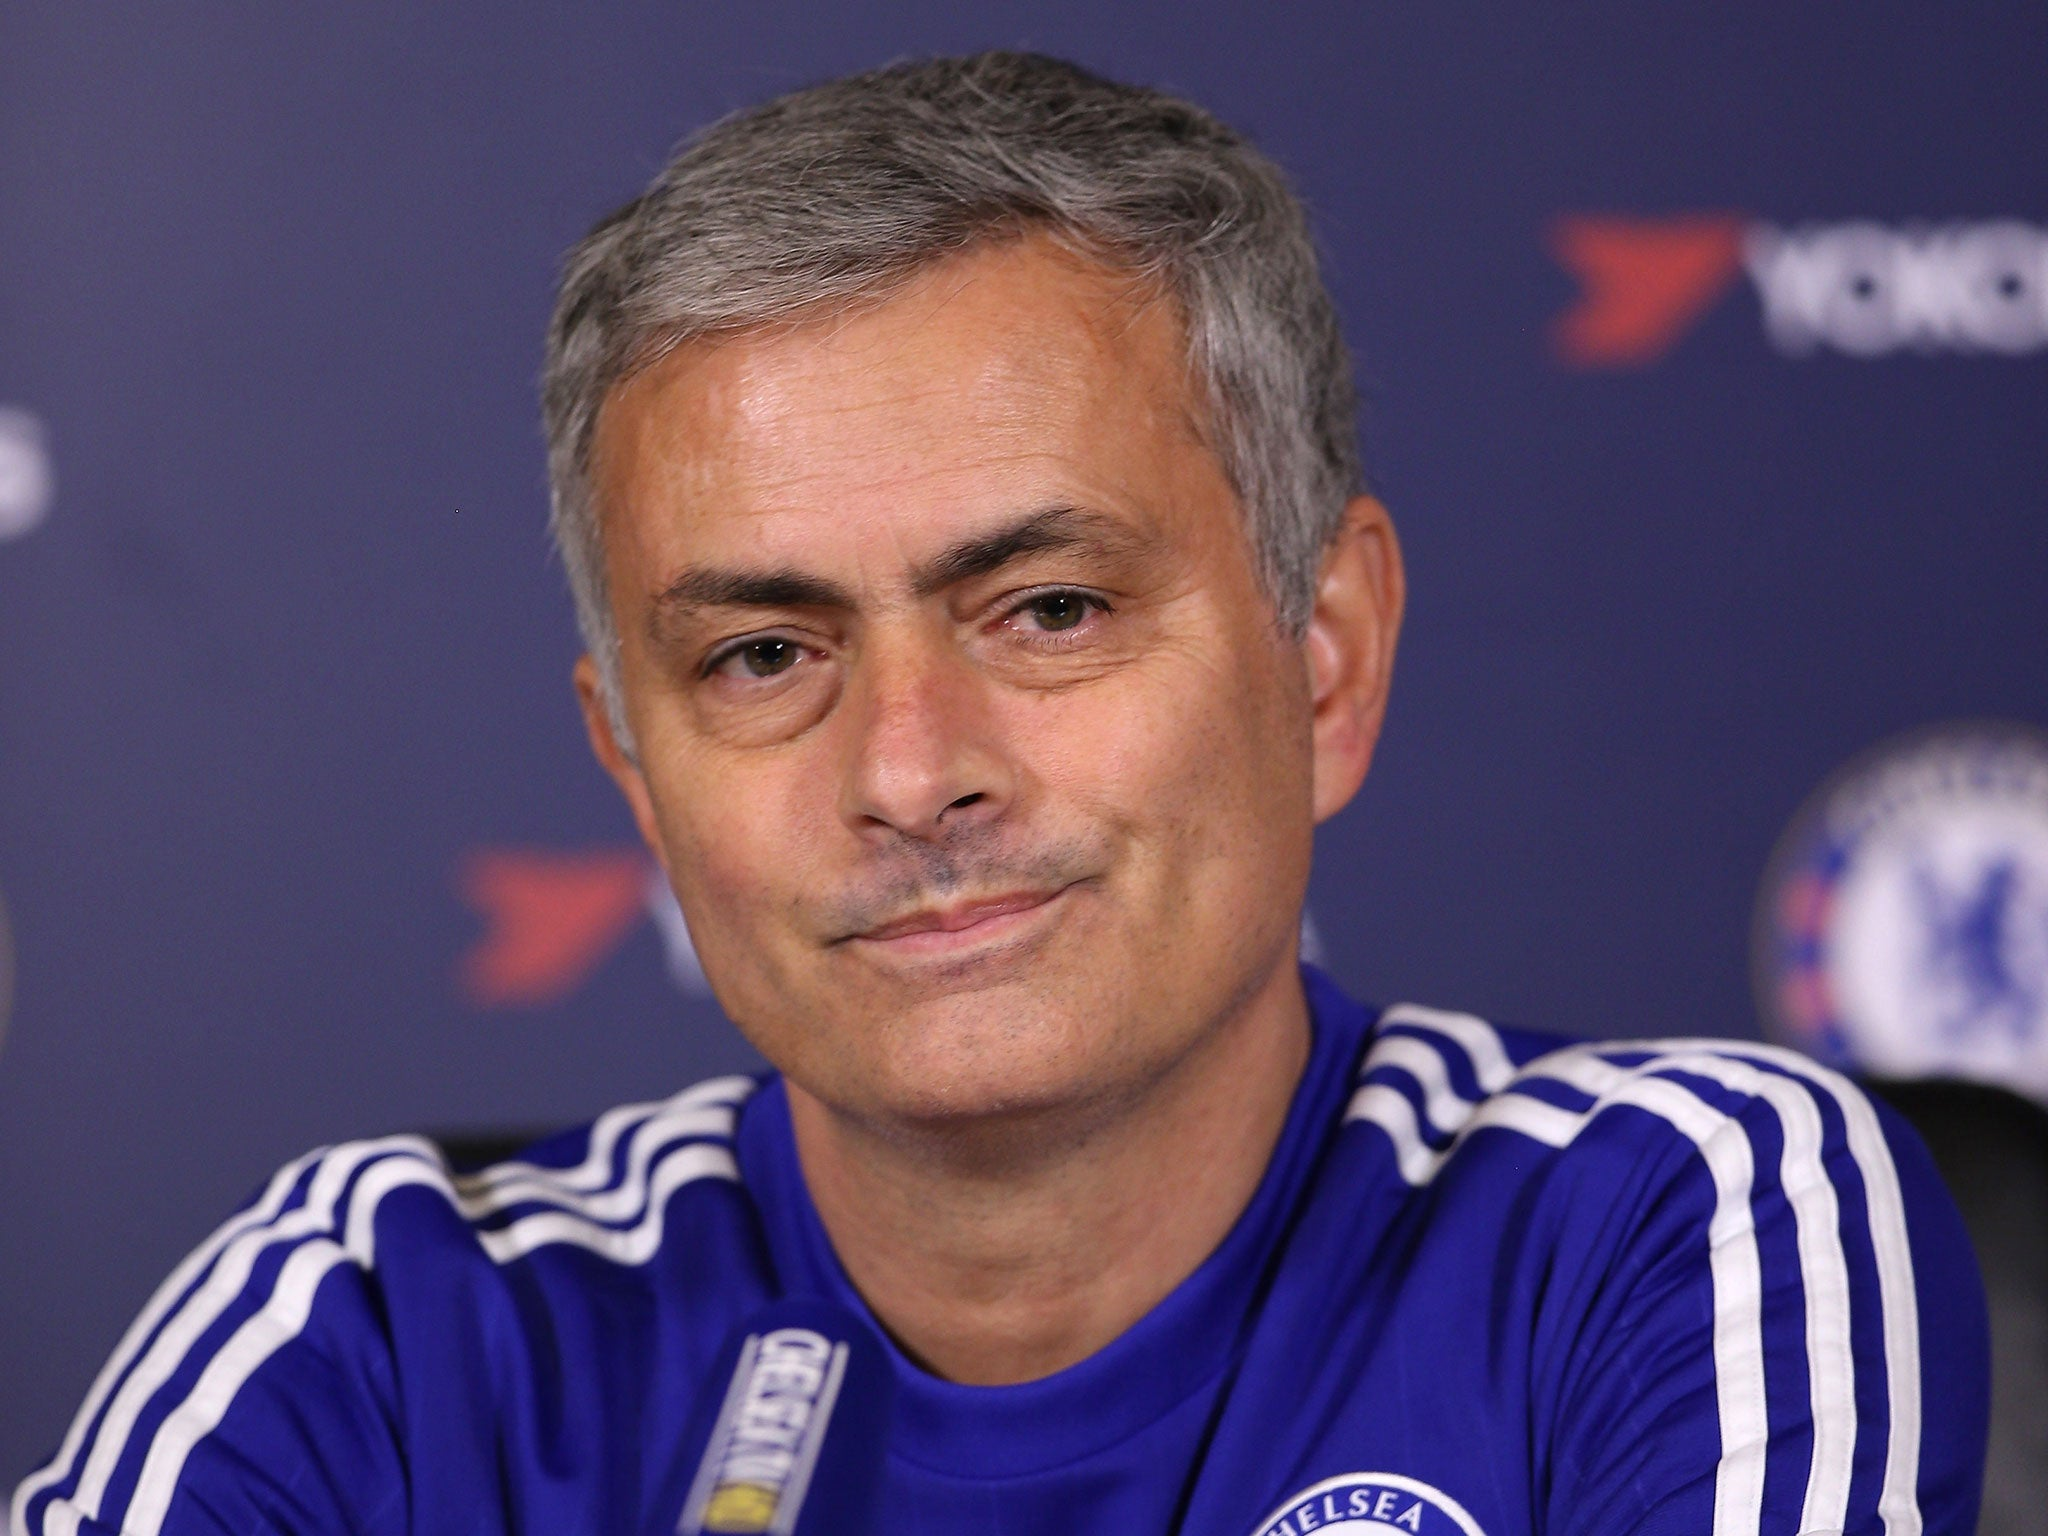 jose mourinho essay More related articles mourinho creeps us out with 'white daddy' comment that's kind of emotional, said michael essien after tribute from man united manager jose mourinho.